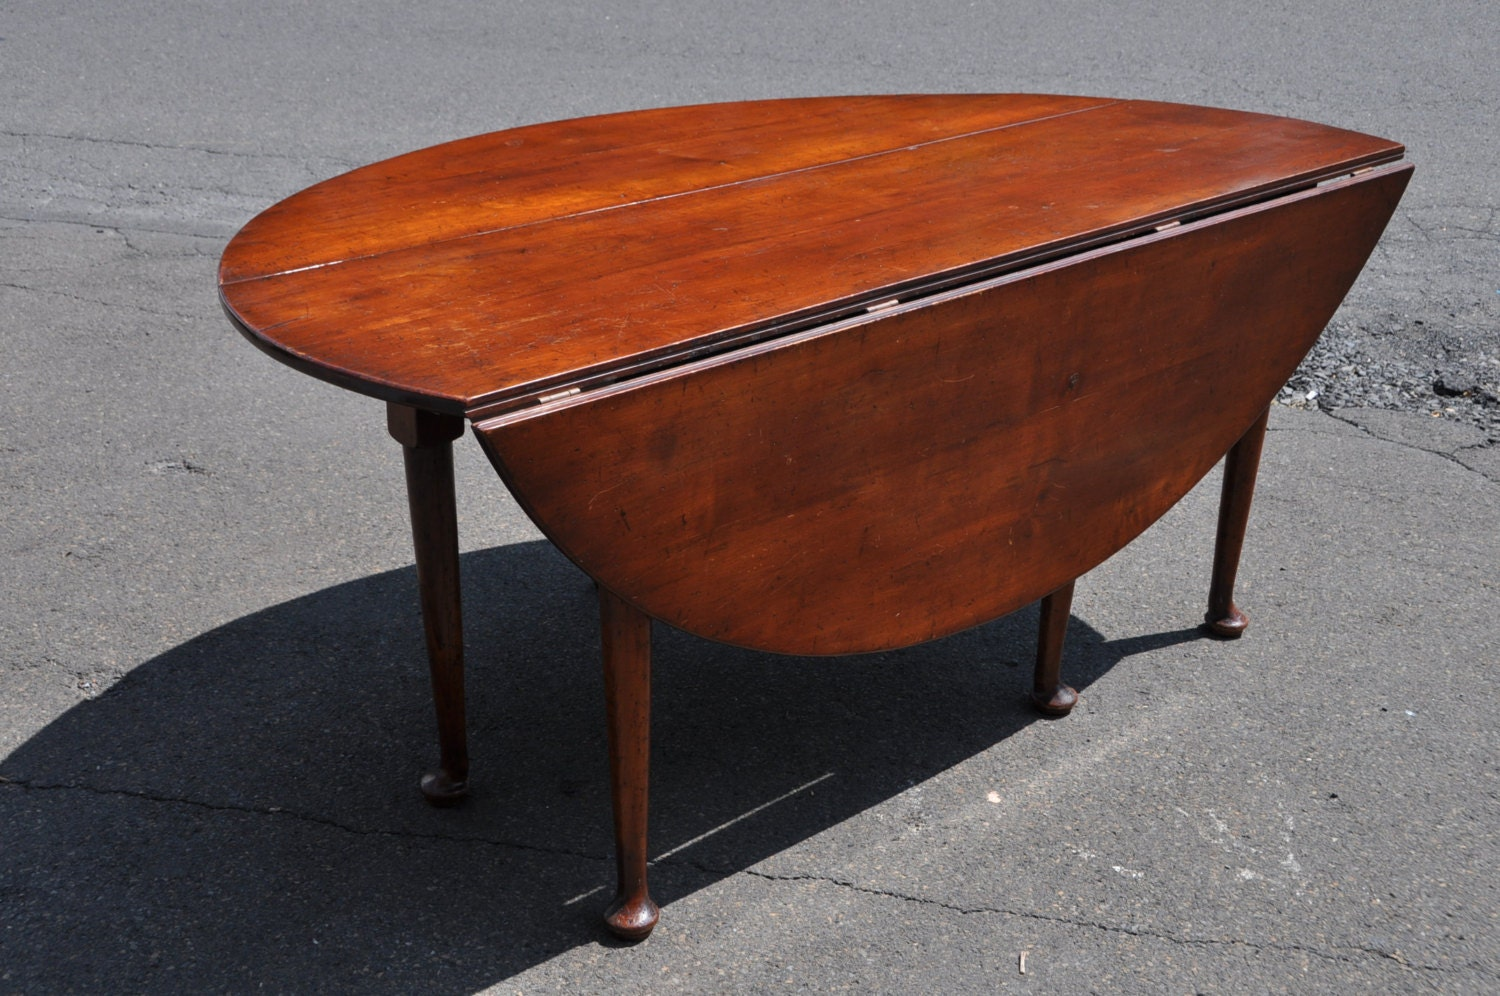 Reproduction English George III Style Mahogany Drop Leaf Dining Table Haute